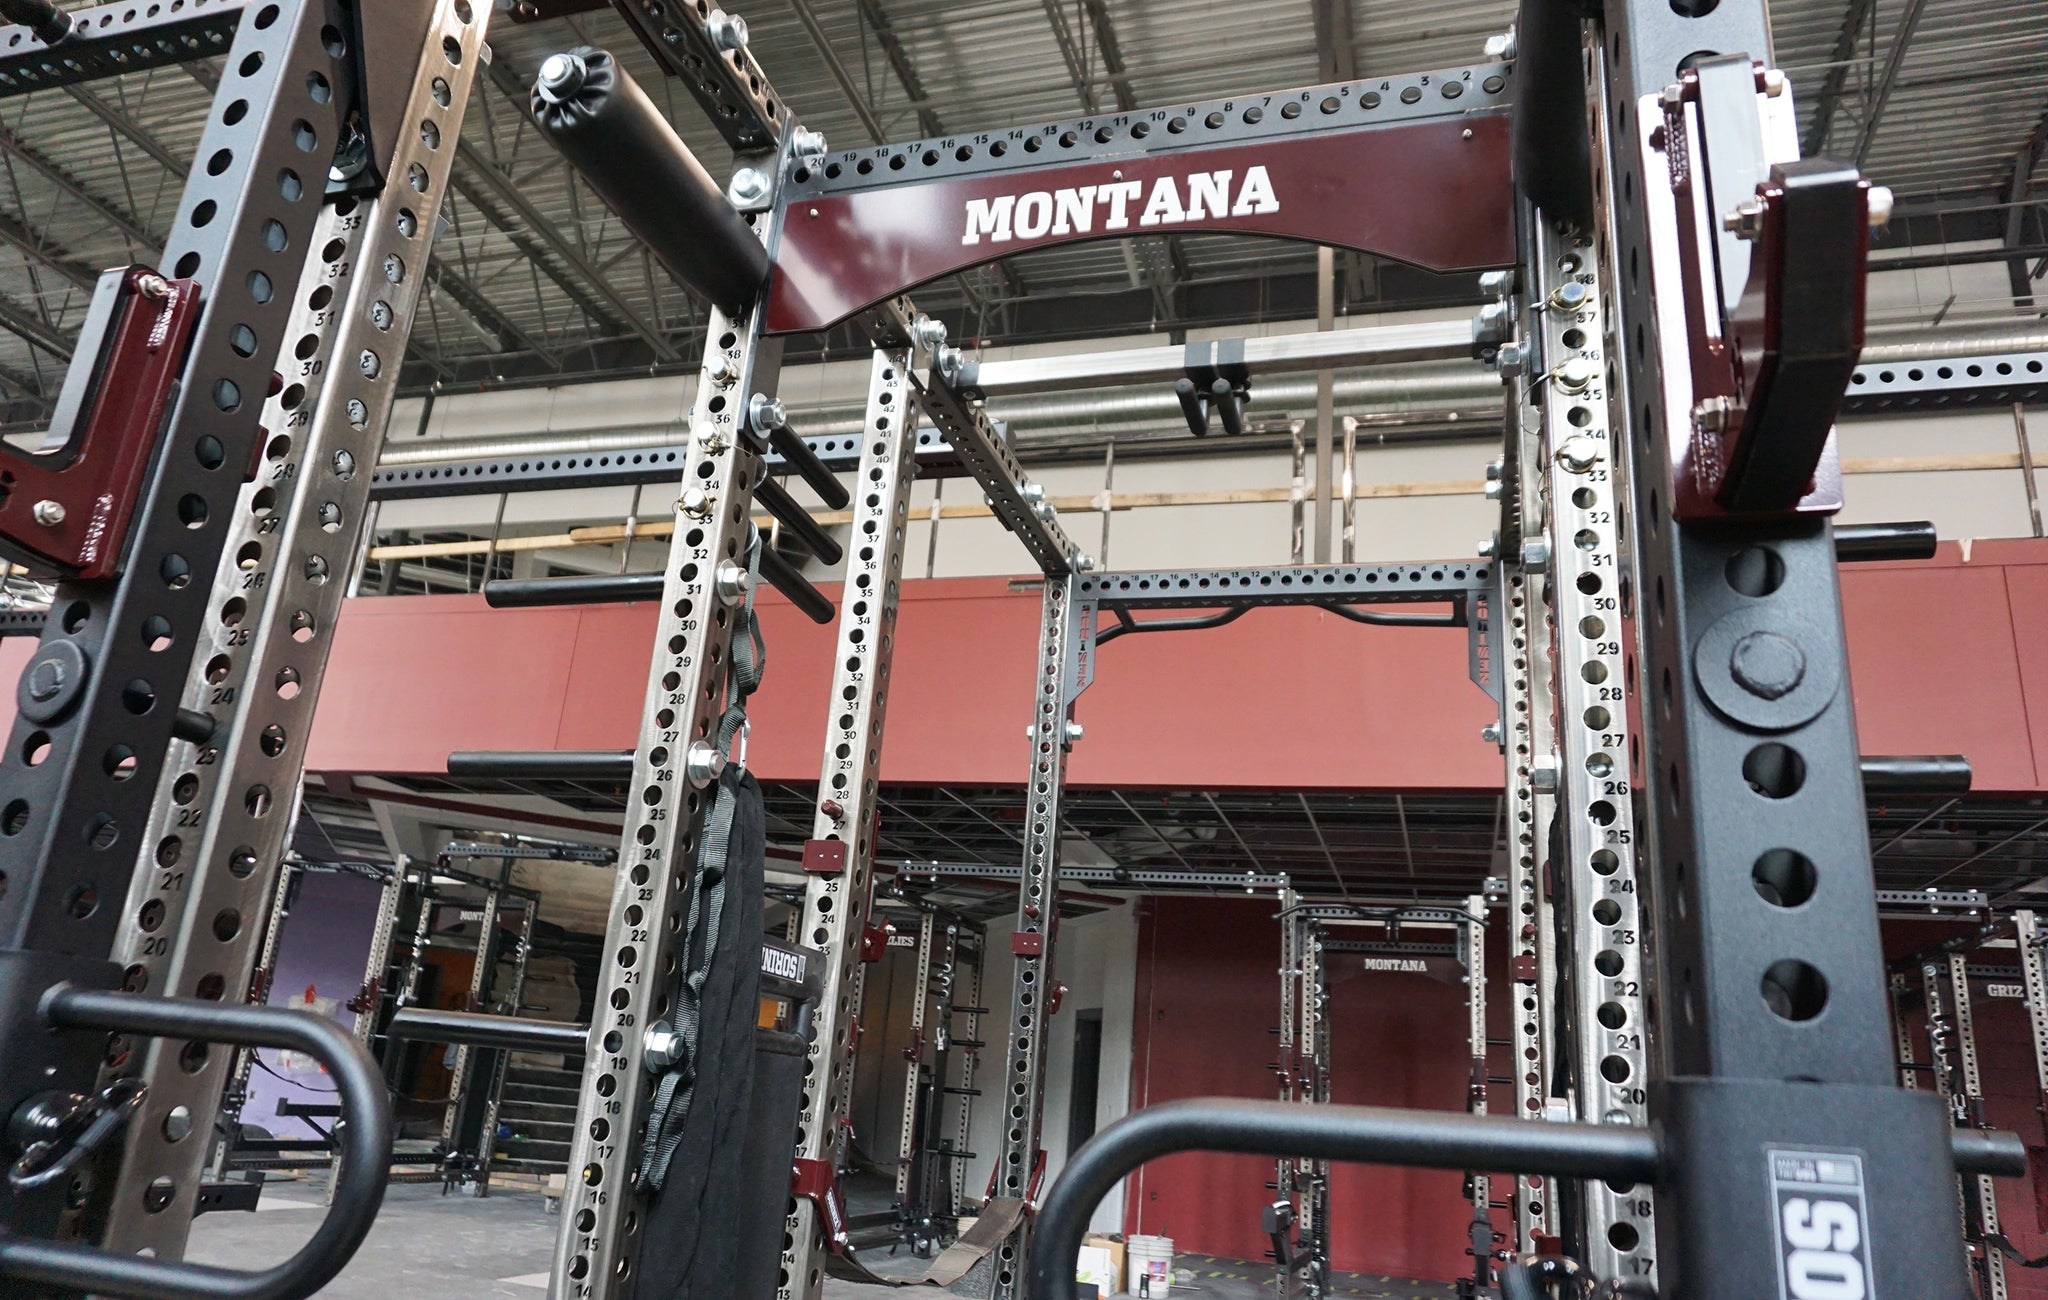 University of Montana strength training